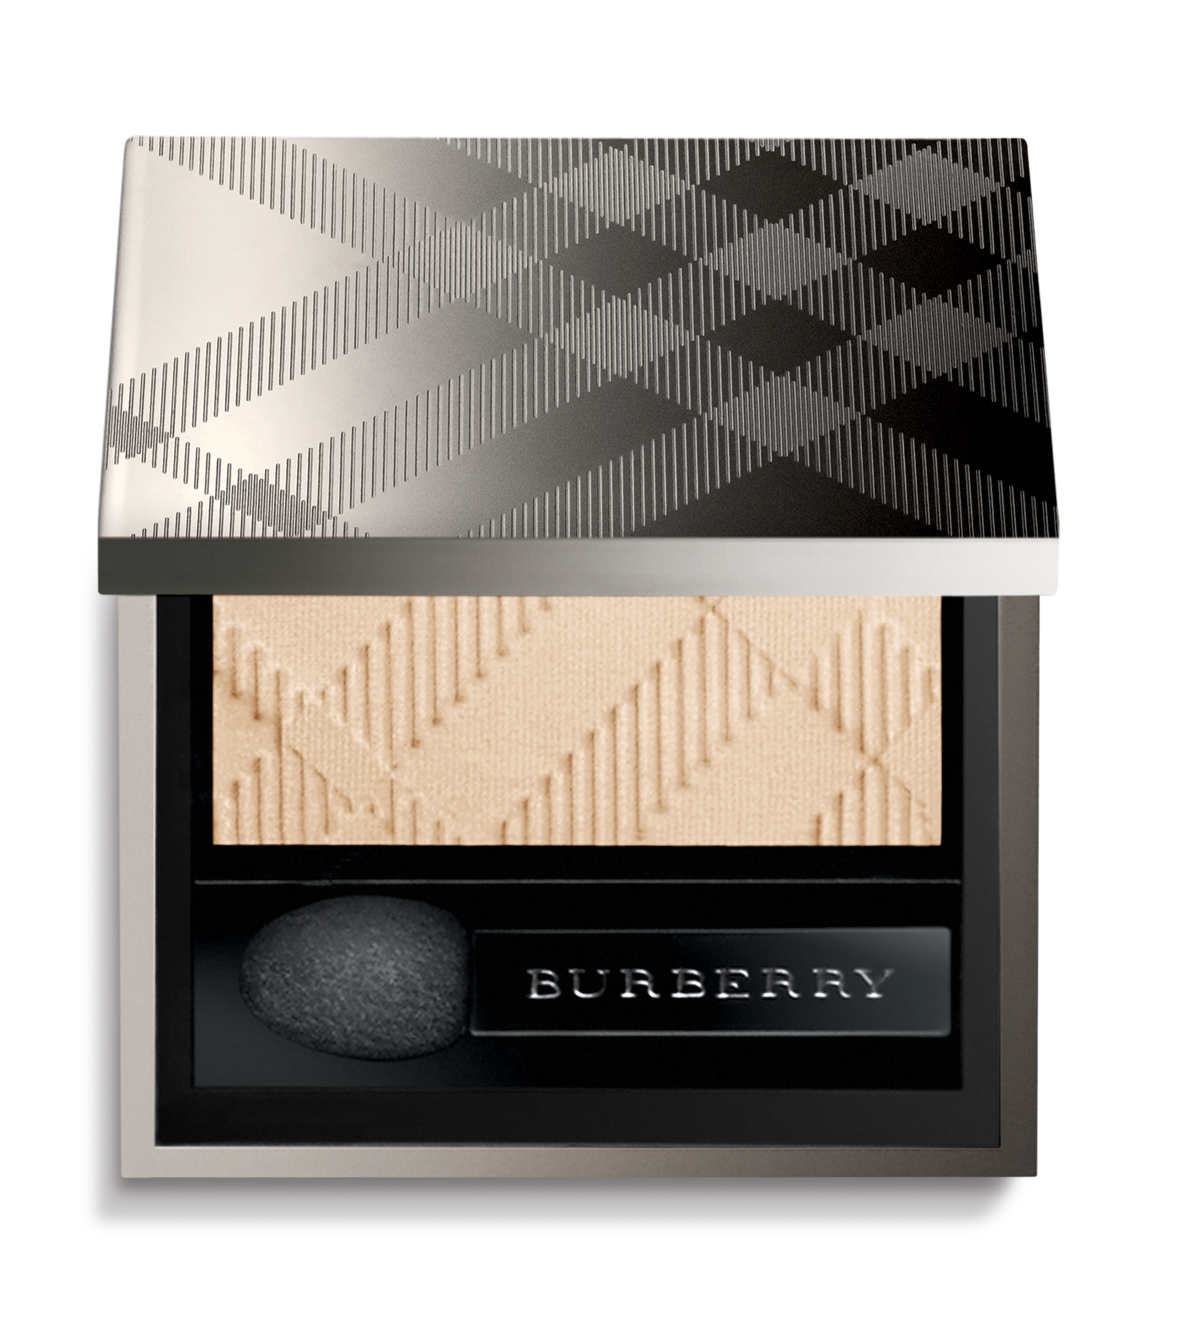 Burberry Sheer eye shadow Gold Pearl No.26